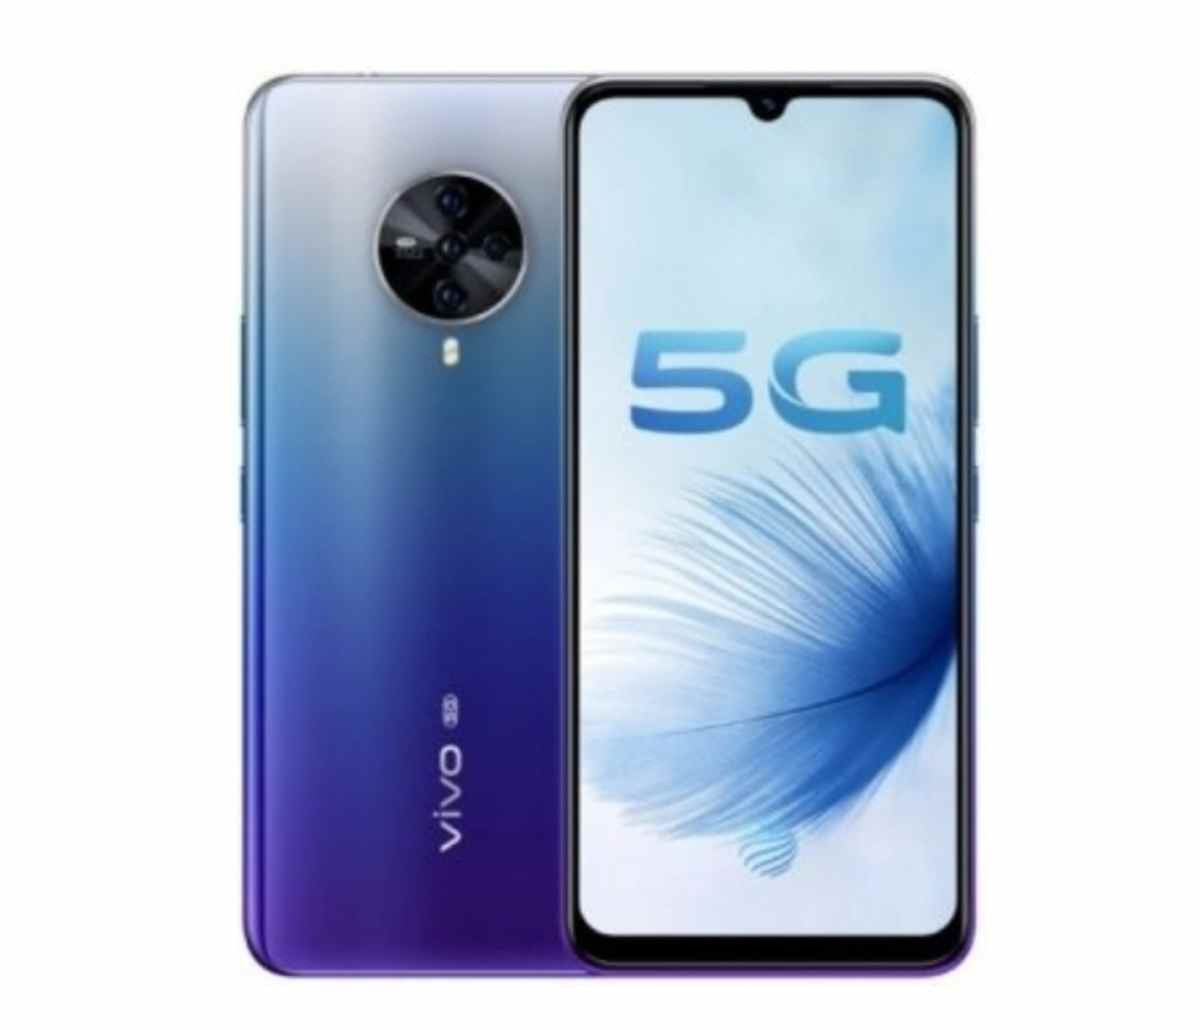 Vivo S6 5G price in Nigeria, Vivo S6 5g, Vivo s6 5g price, Vivo s6 5g specs and price in Nigeria, Vivo s6 5g specs, how much is vivo s6 5g price in Nigeria, price of Vivo S6 5G in Nigeria, Vivo S6 5G in Nigeria